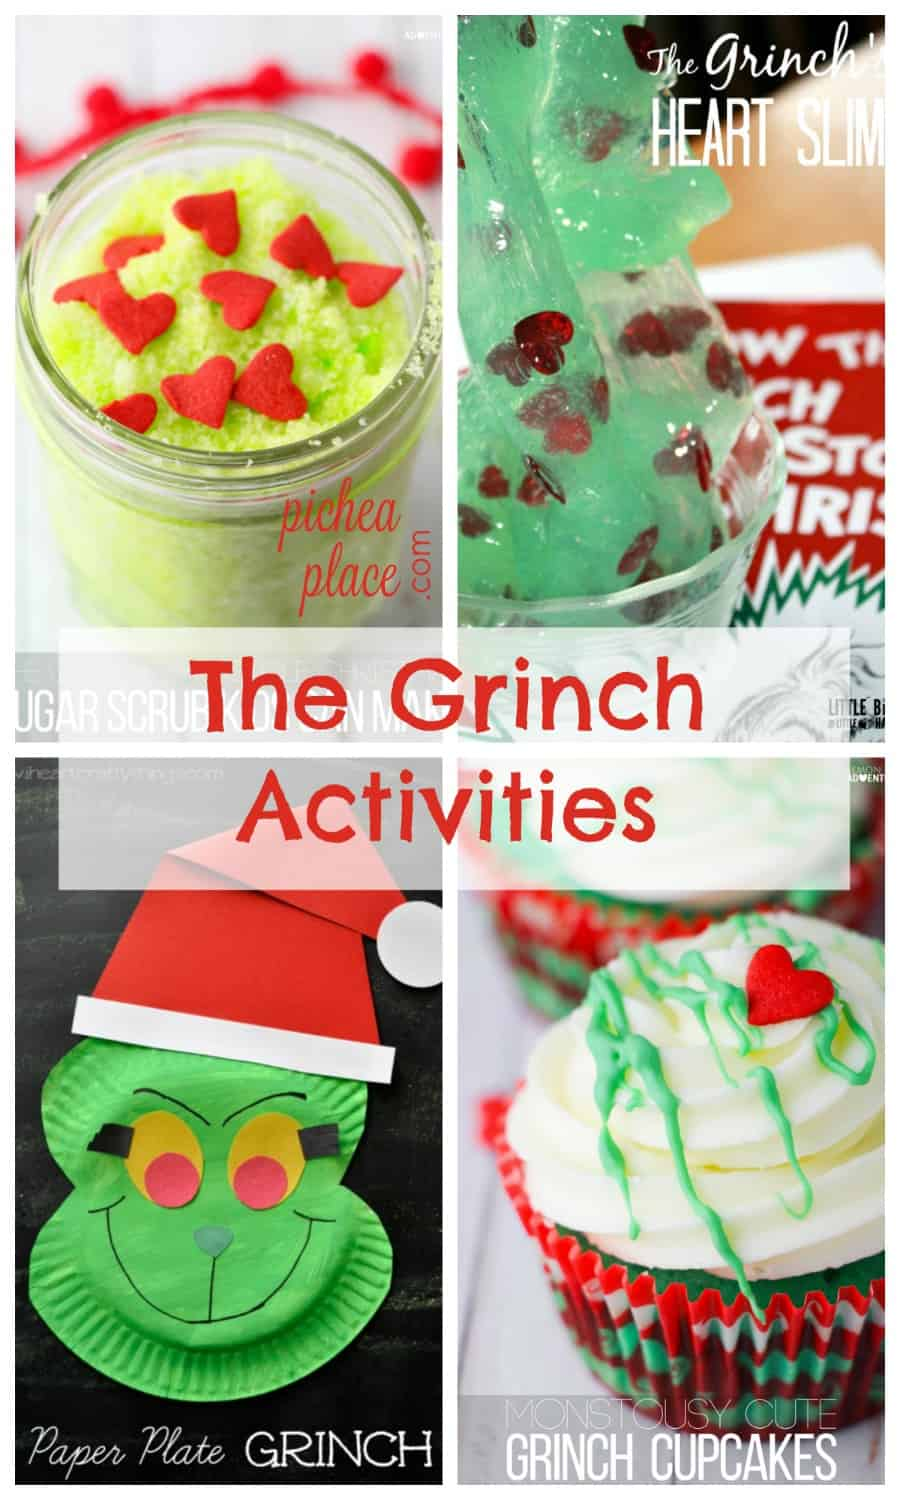 Dr Seuss Activities for Kids activities anized by book